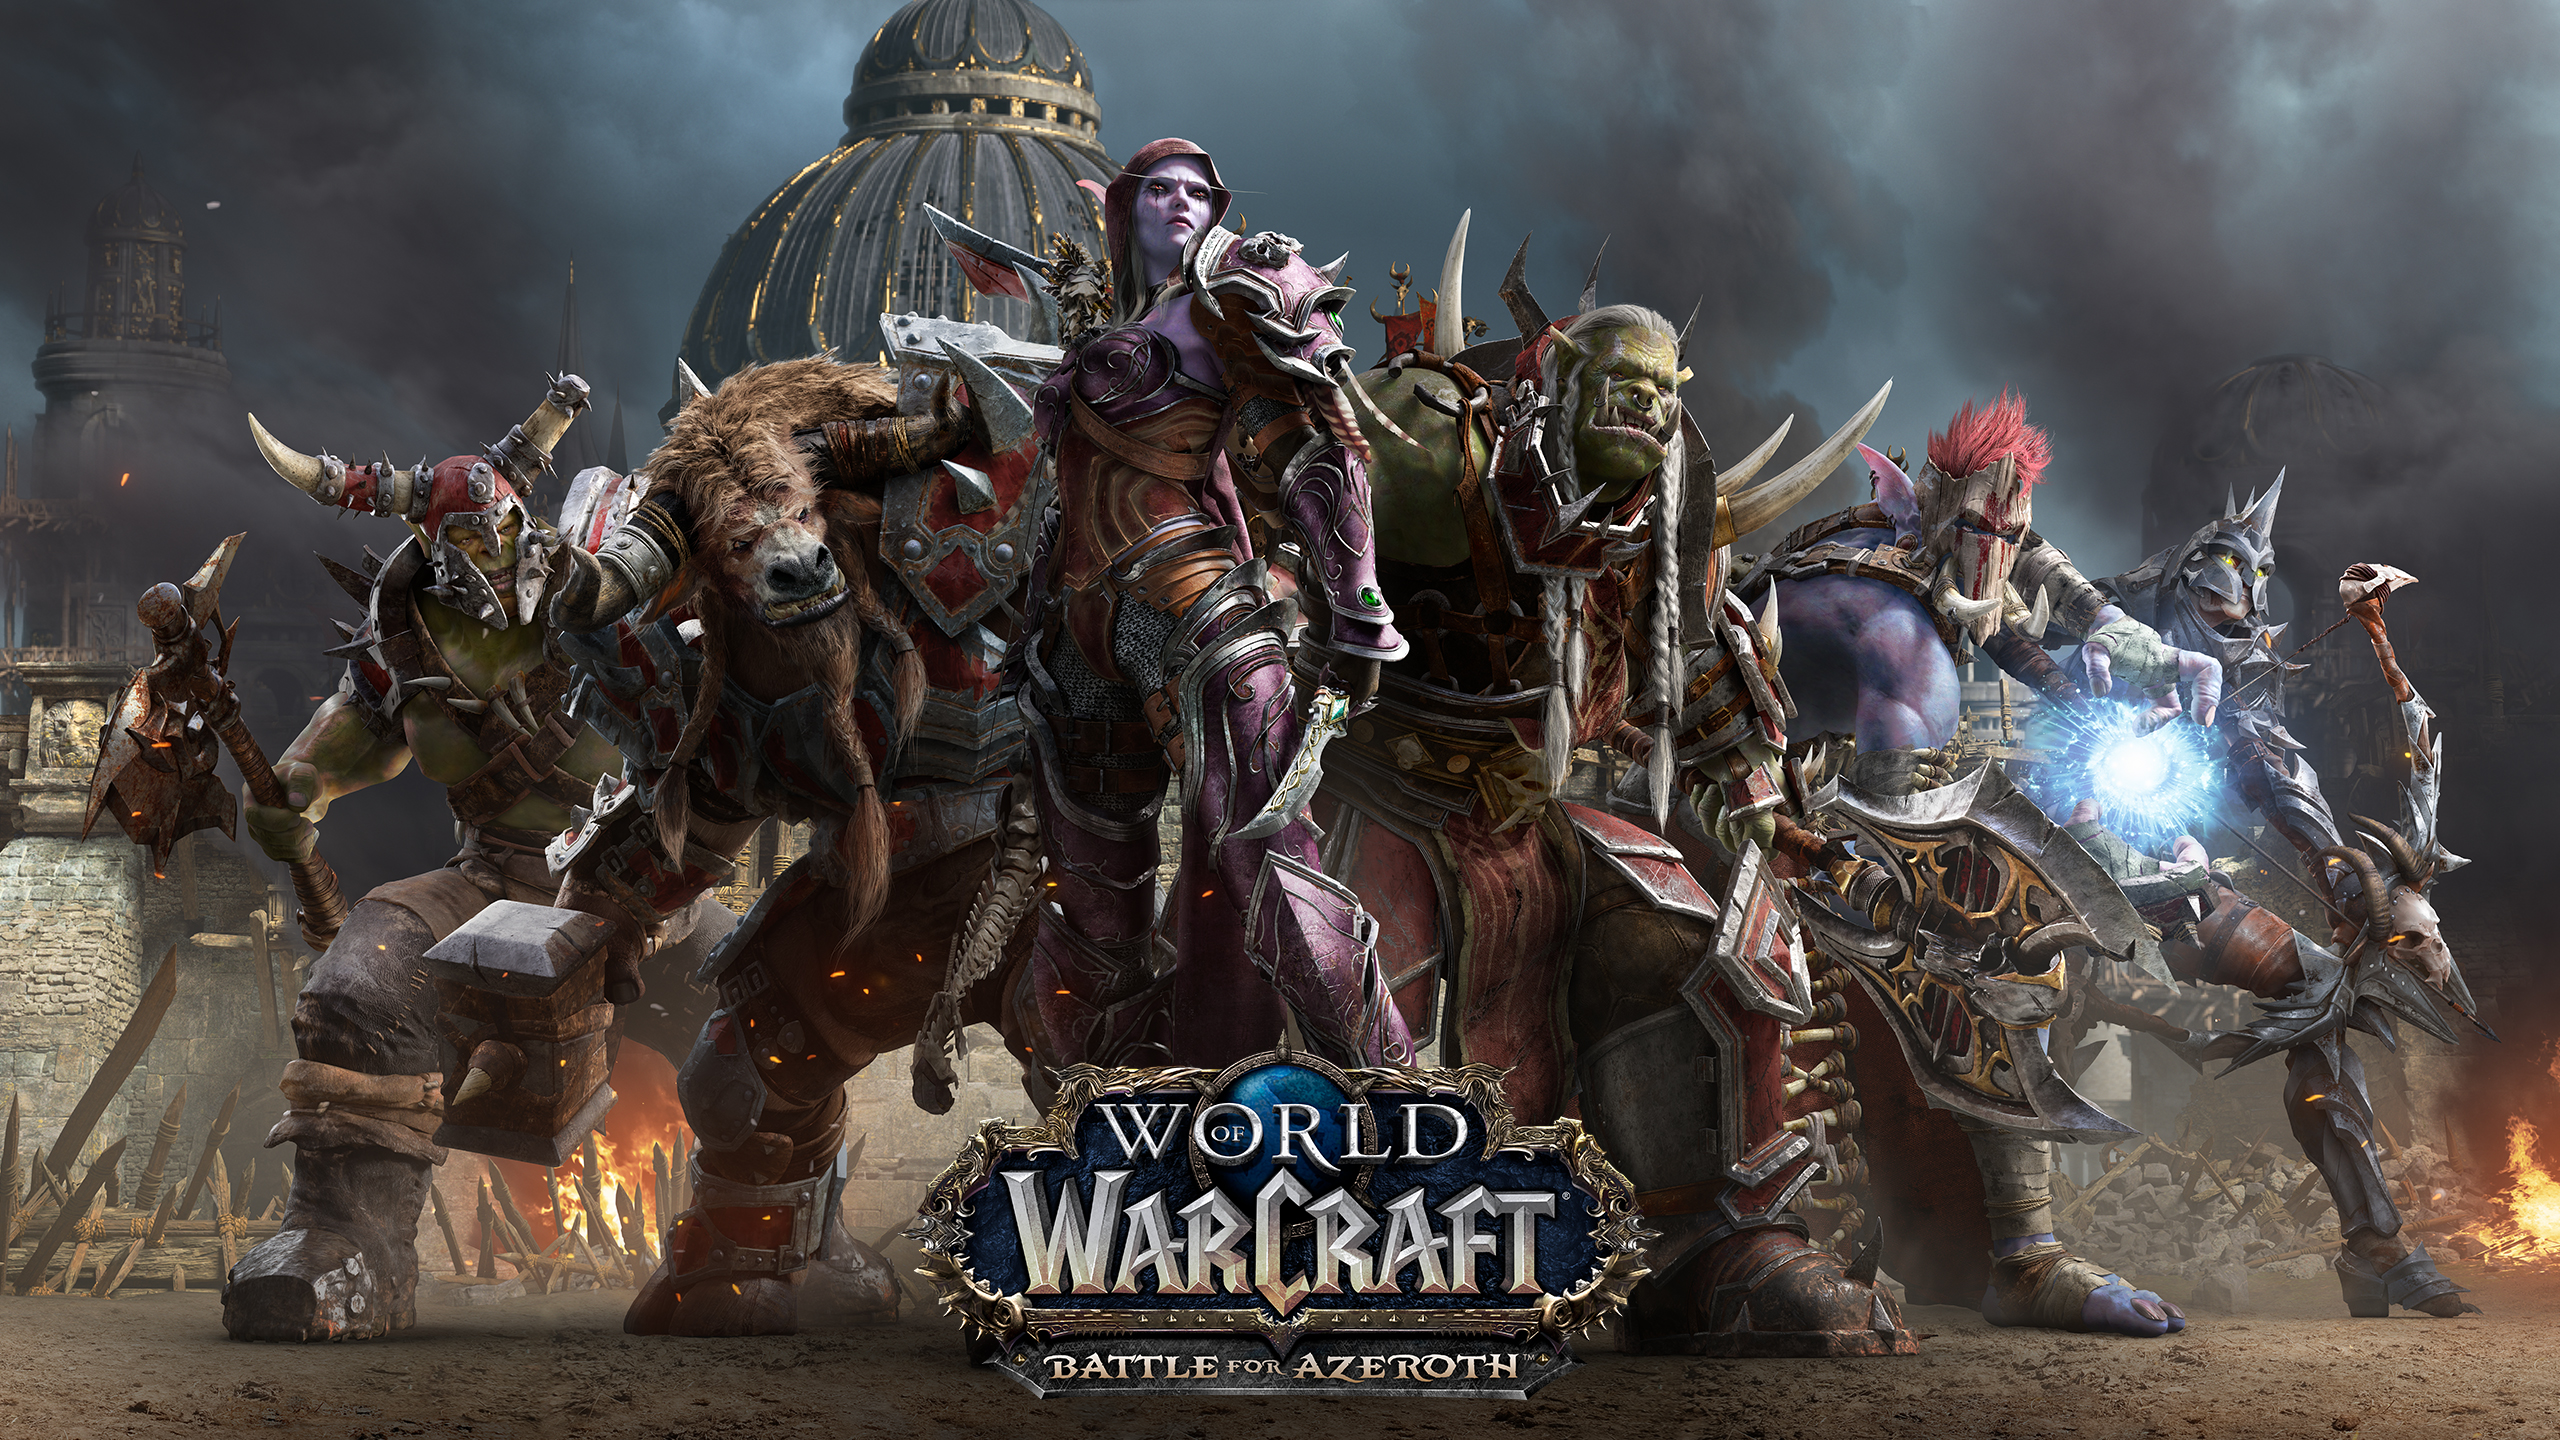 World of Warcraft: Battle for Azeroth - World of Warcraft Арт